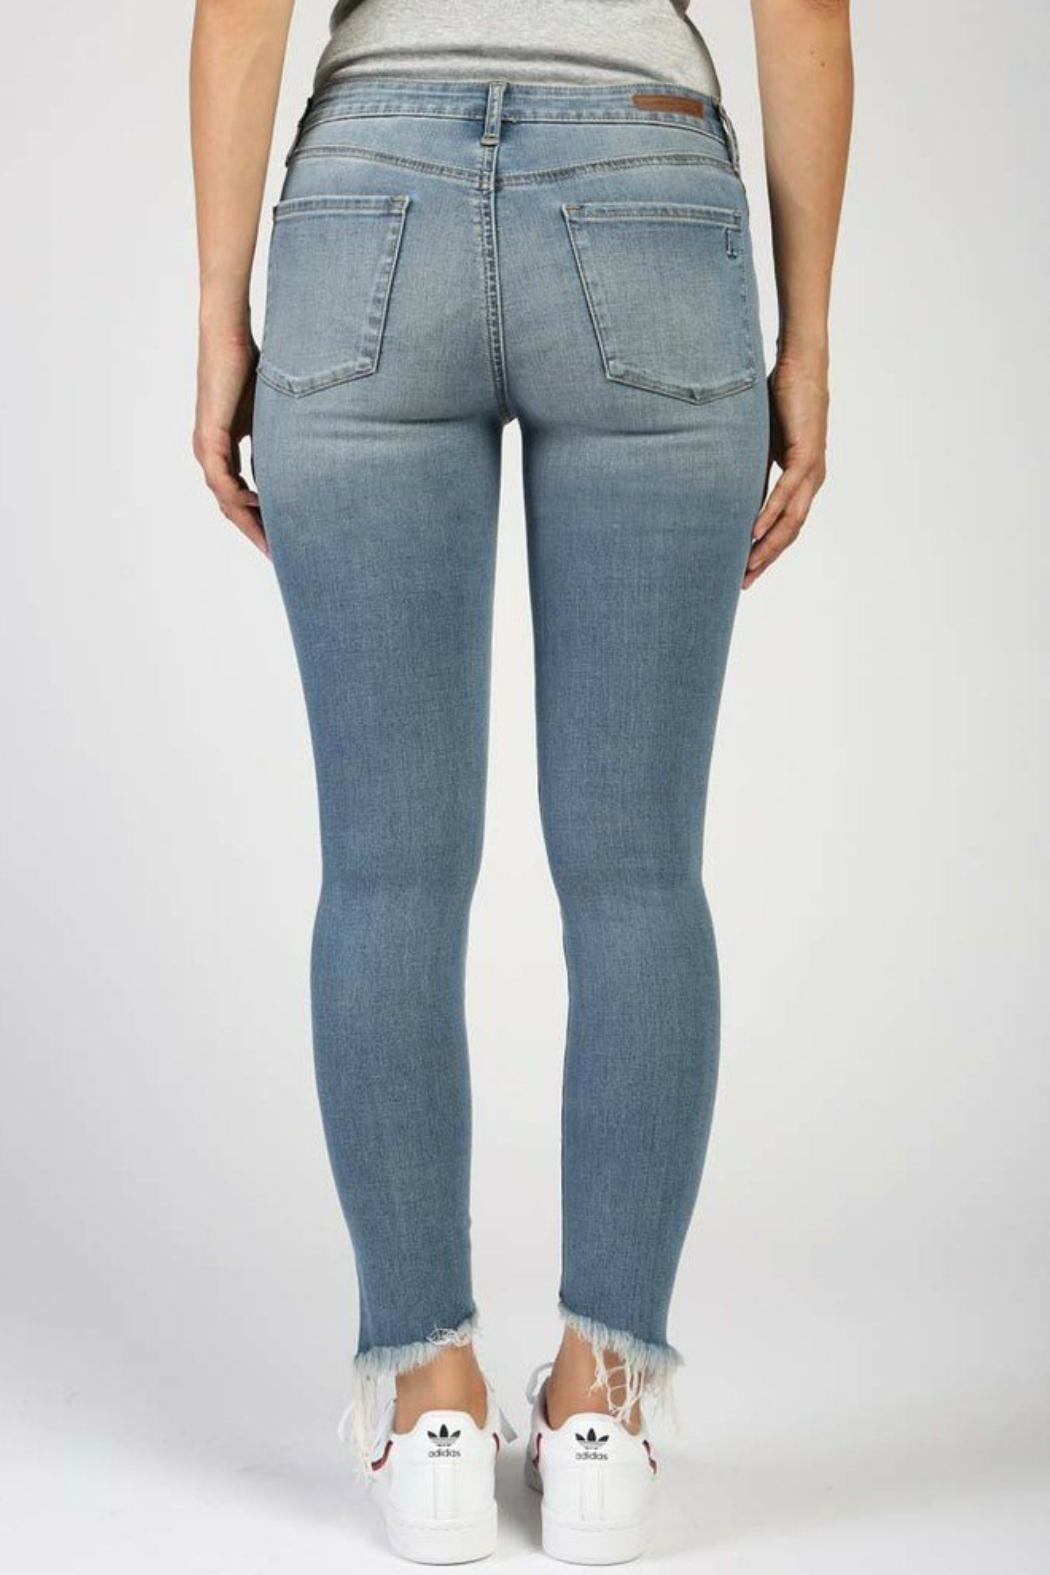 Articles of Society Montego Suzy Skinny-Jeans - Front Full Image